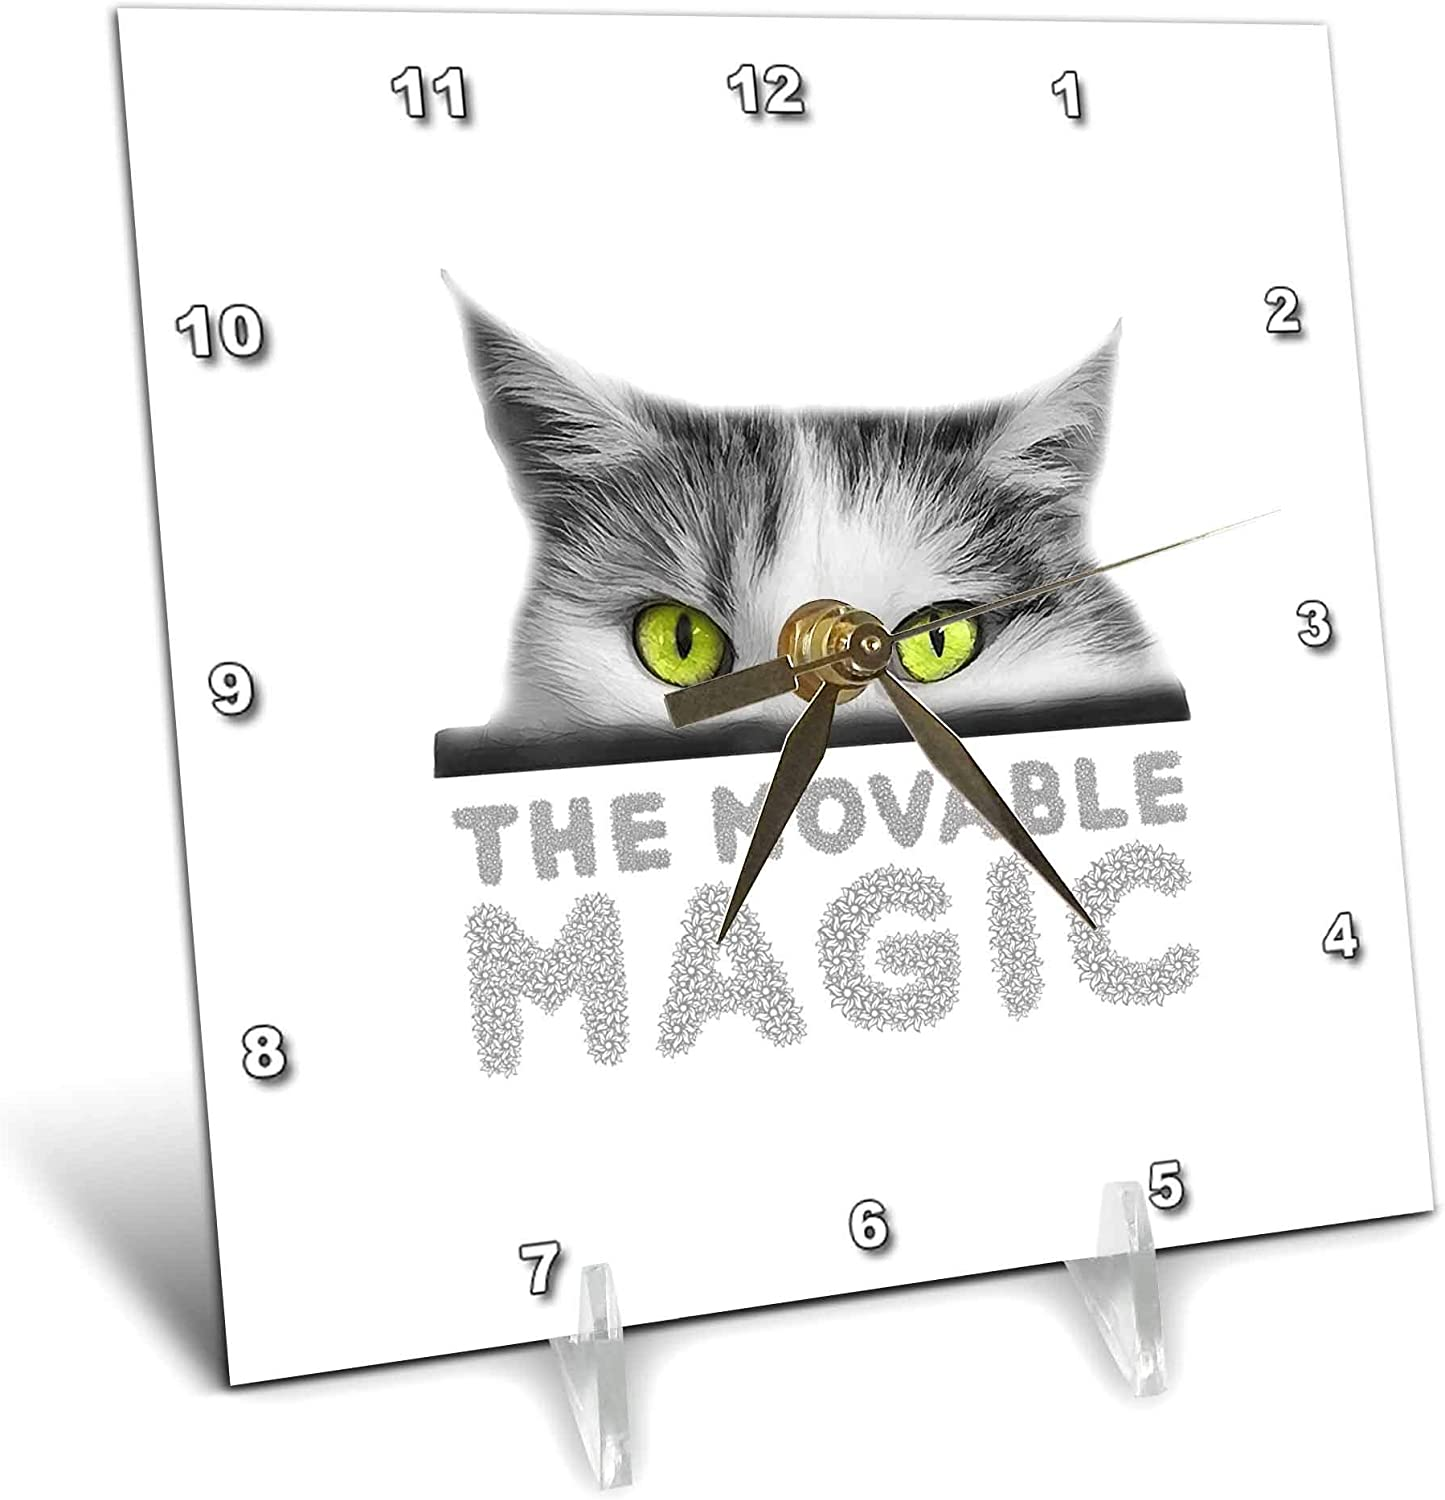 3dRose Alexis Design - Cat Ranking TOP13 Industry No. 1 Eyes Green cat. M Stunning Eyed The